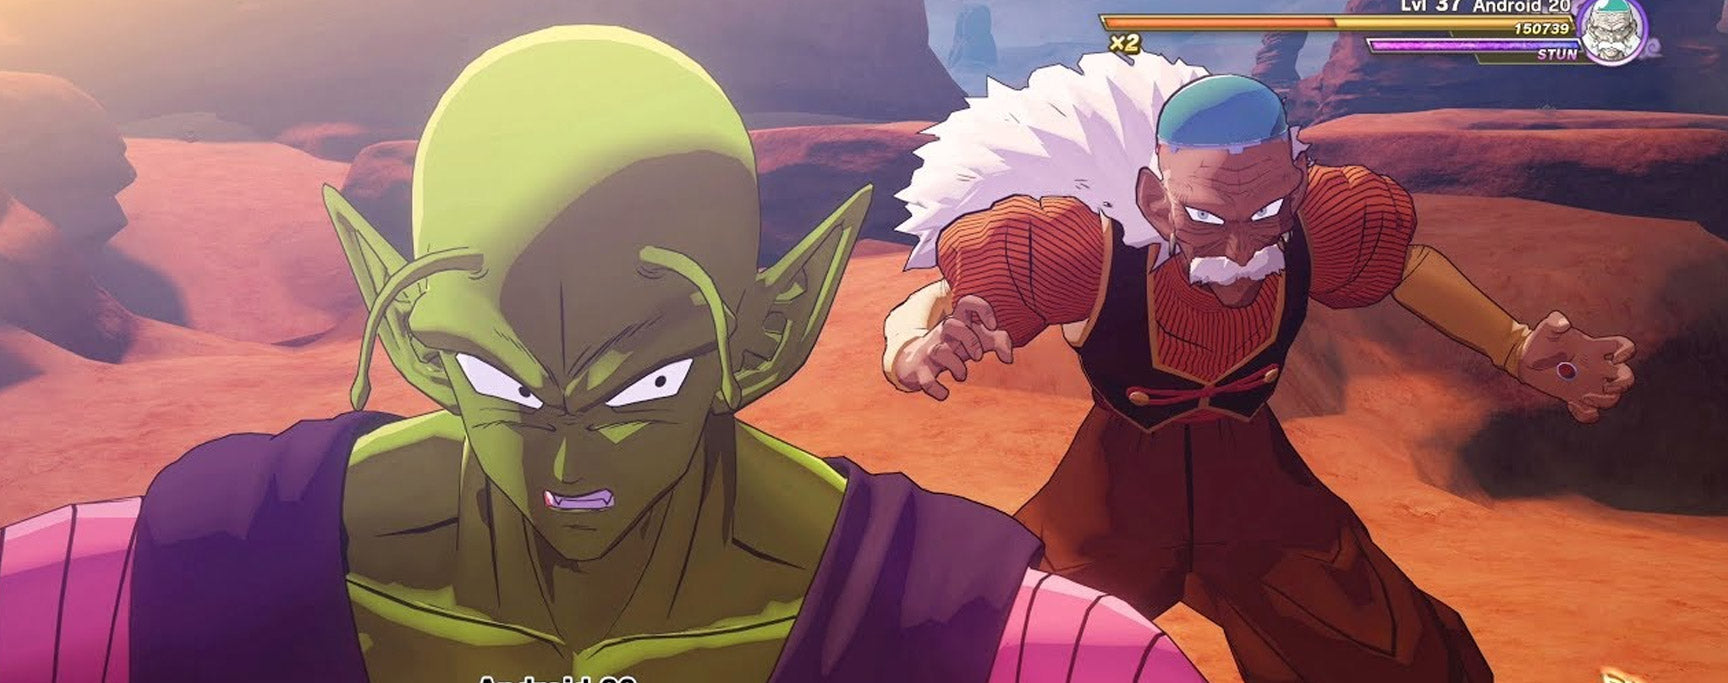 Piccolo vs C-20 Kakarot